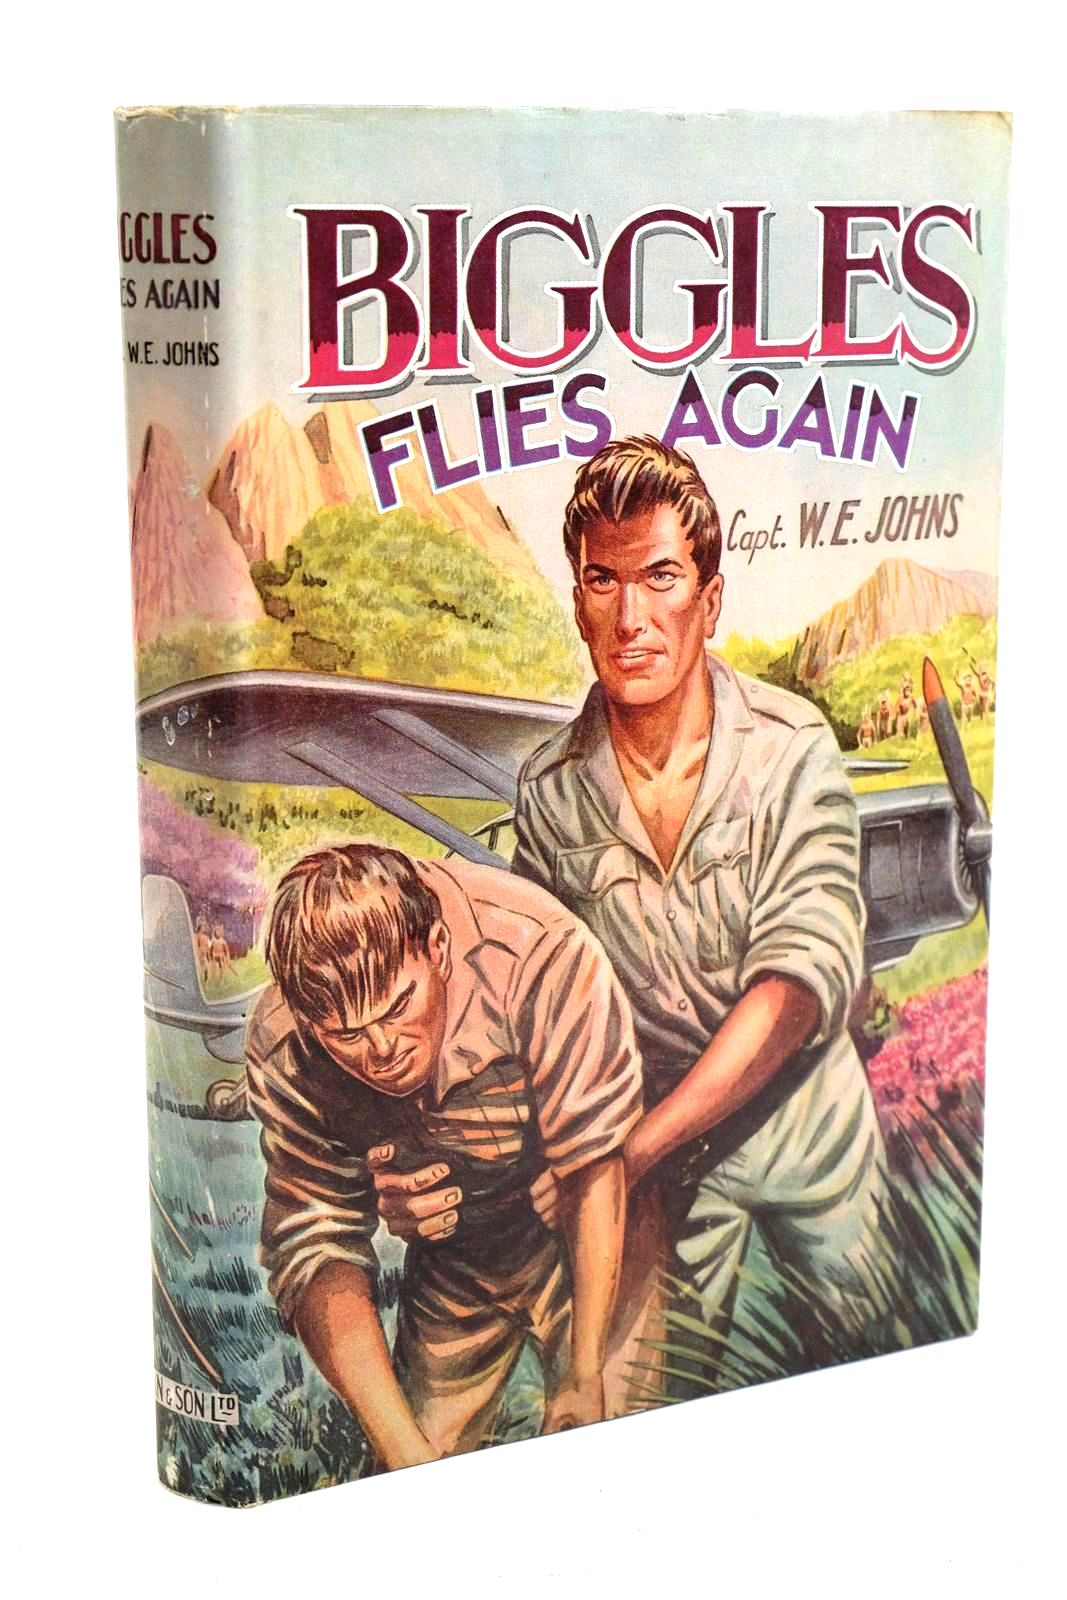 Photo of BIGGLES FLIES AGAIN written by Johns, W.E. published by Dean & Son Ltd. (STOCK CODE: 1320704)  for sale by Stella & Rose's Books